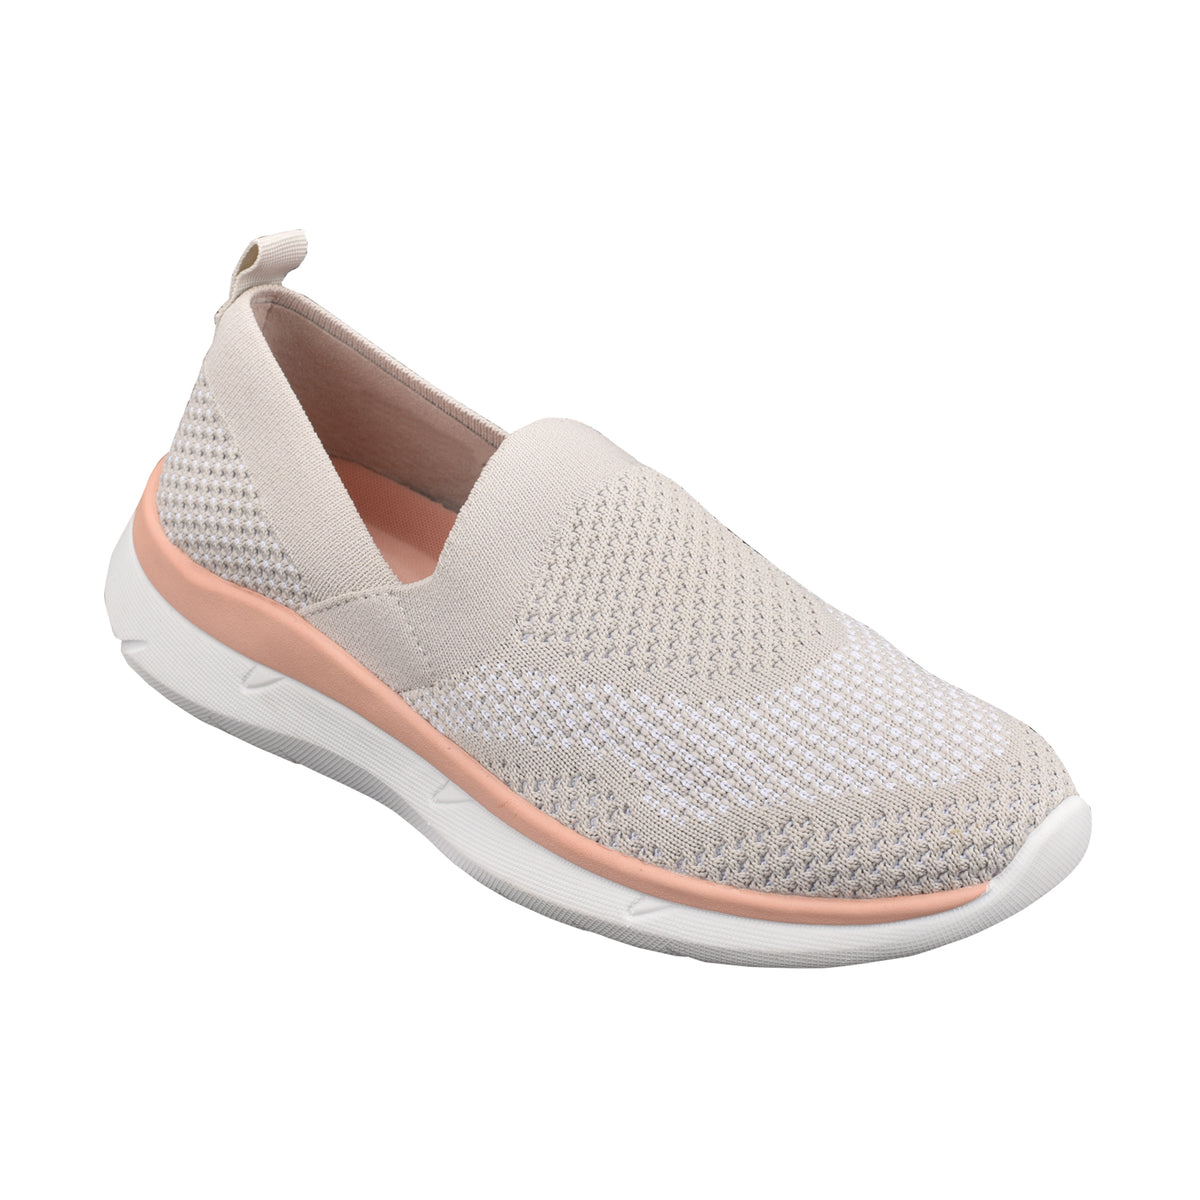 Savanah Slip On Walking Shoes